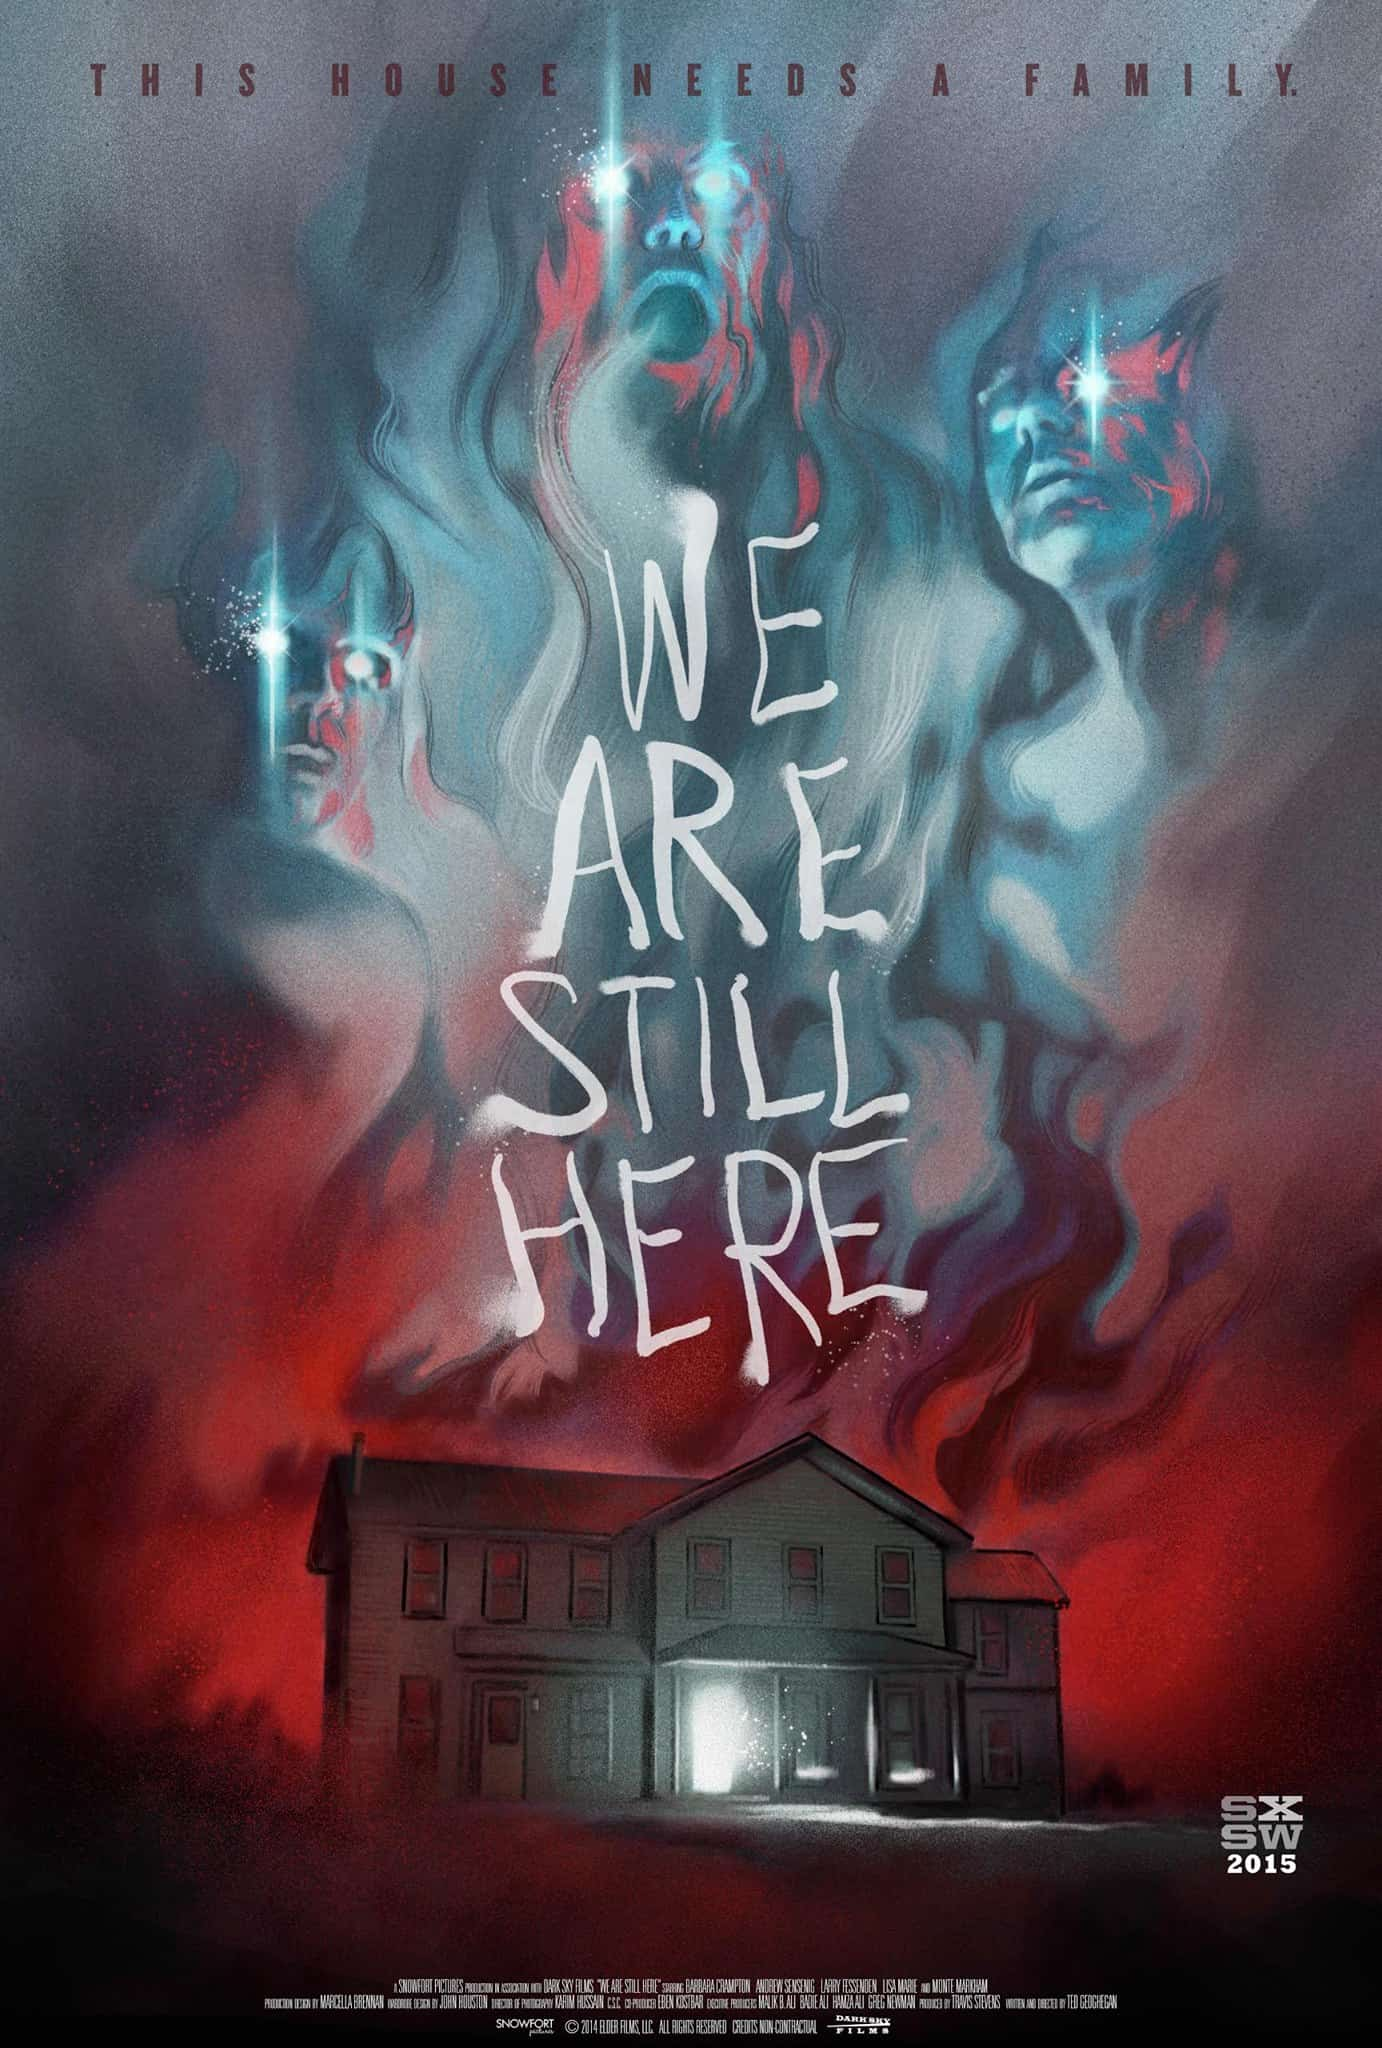 Mike's Review: We are still here (2015)